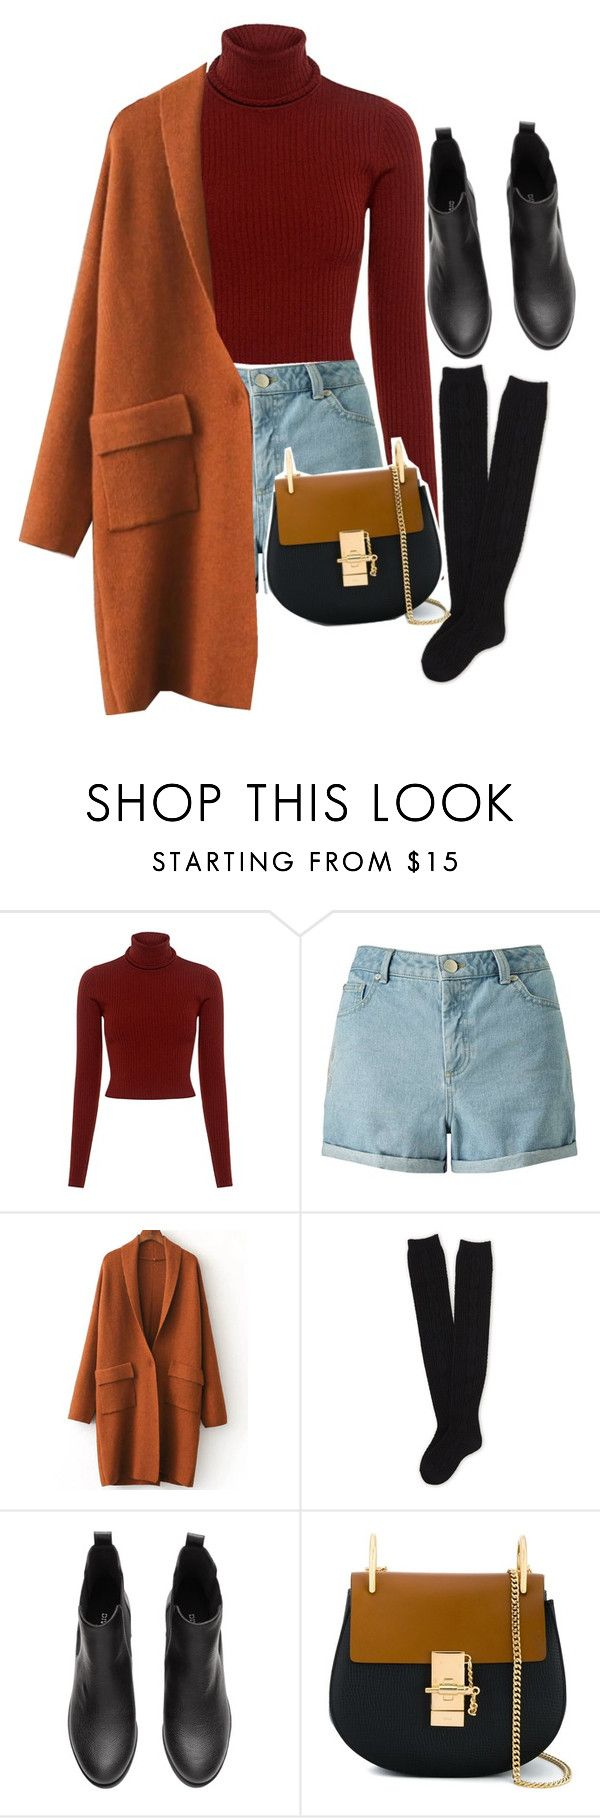 """noora skam"" by bruhkyu ❤ liked on Polyvore featuring A.L.C., Miss Selfridge, Aéropostale and Chloé"